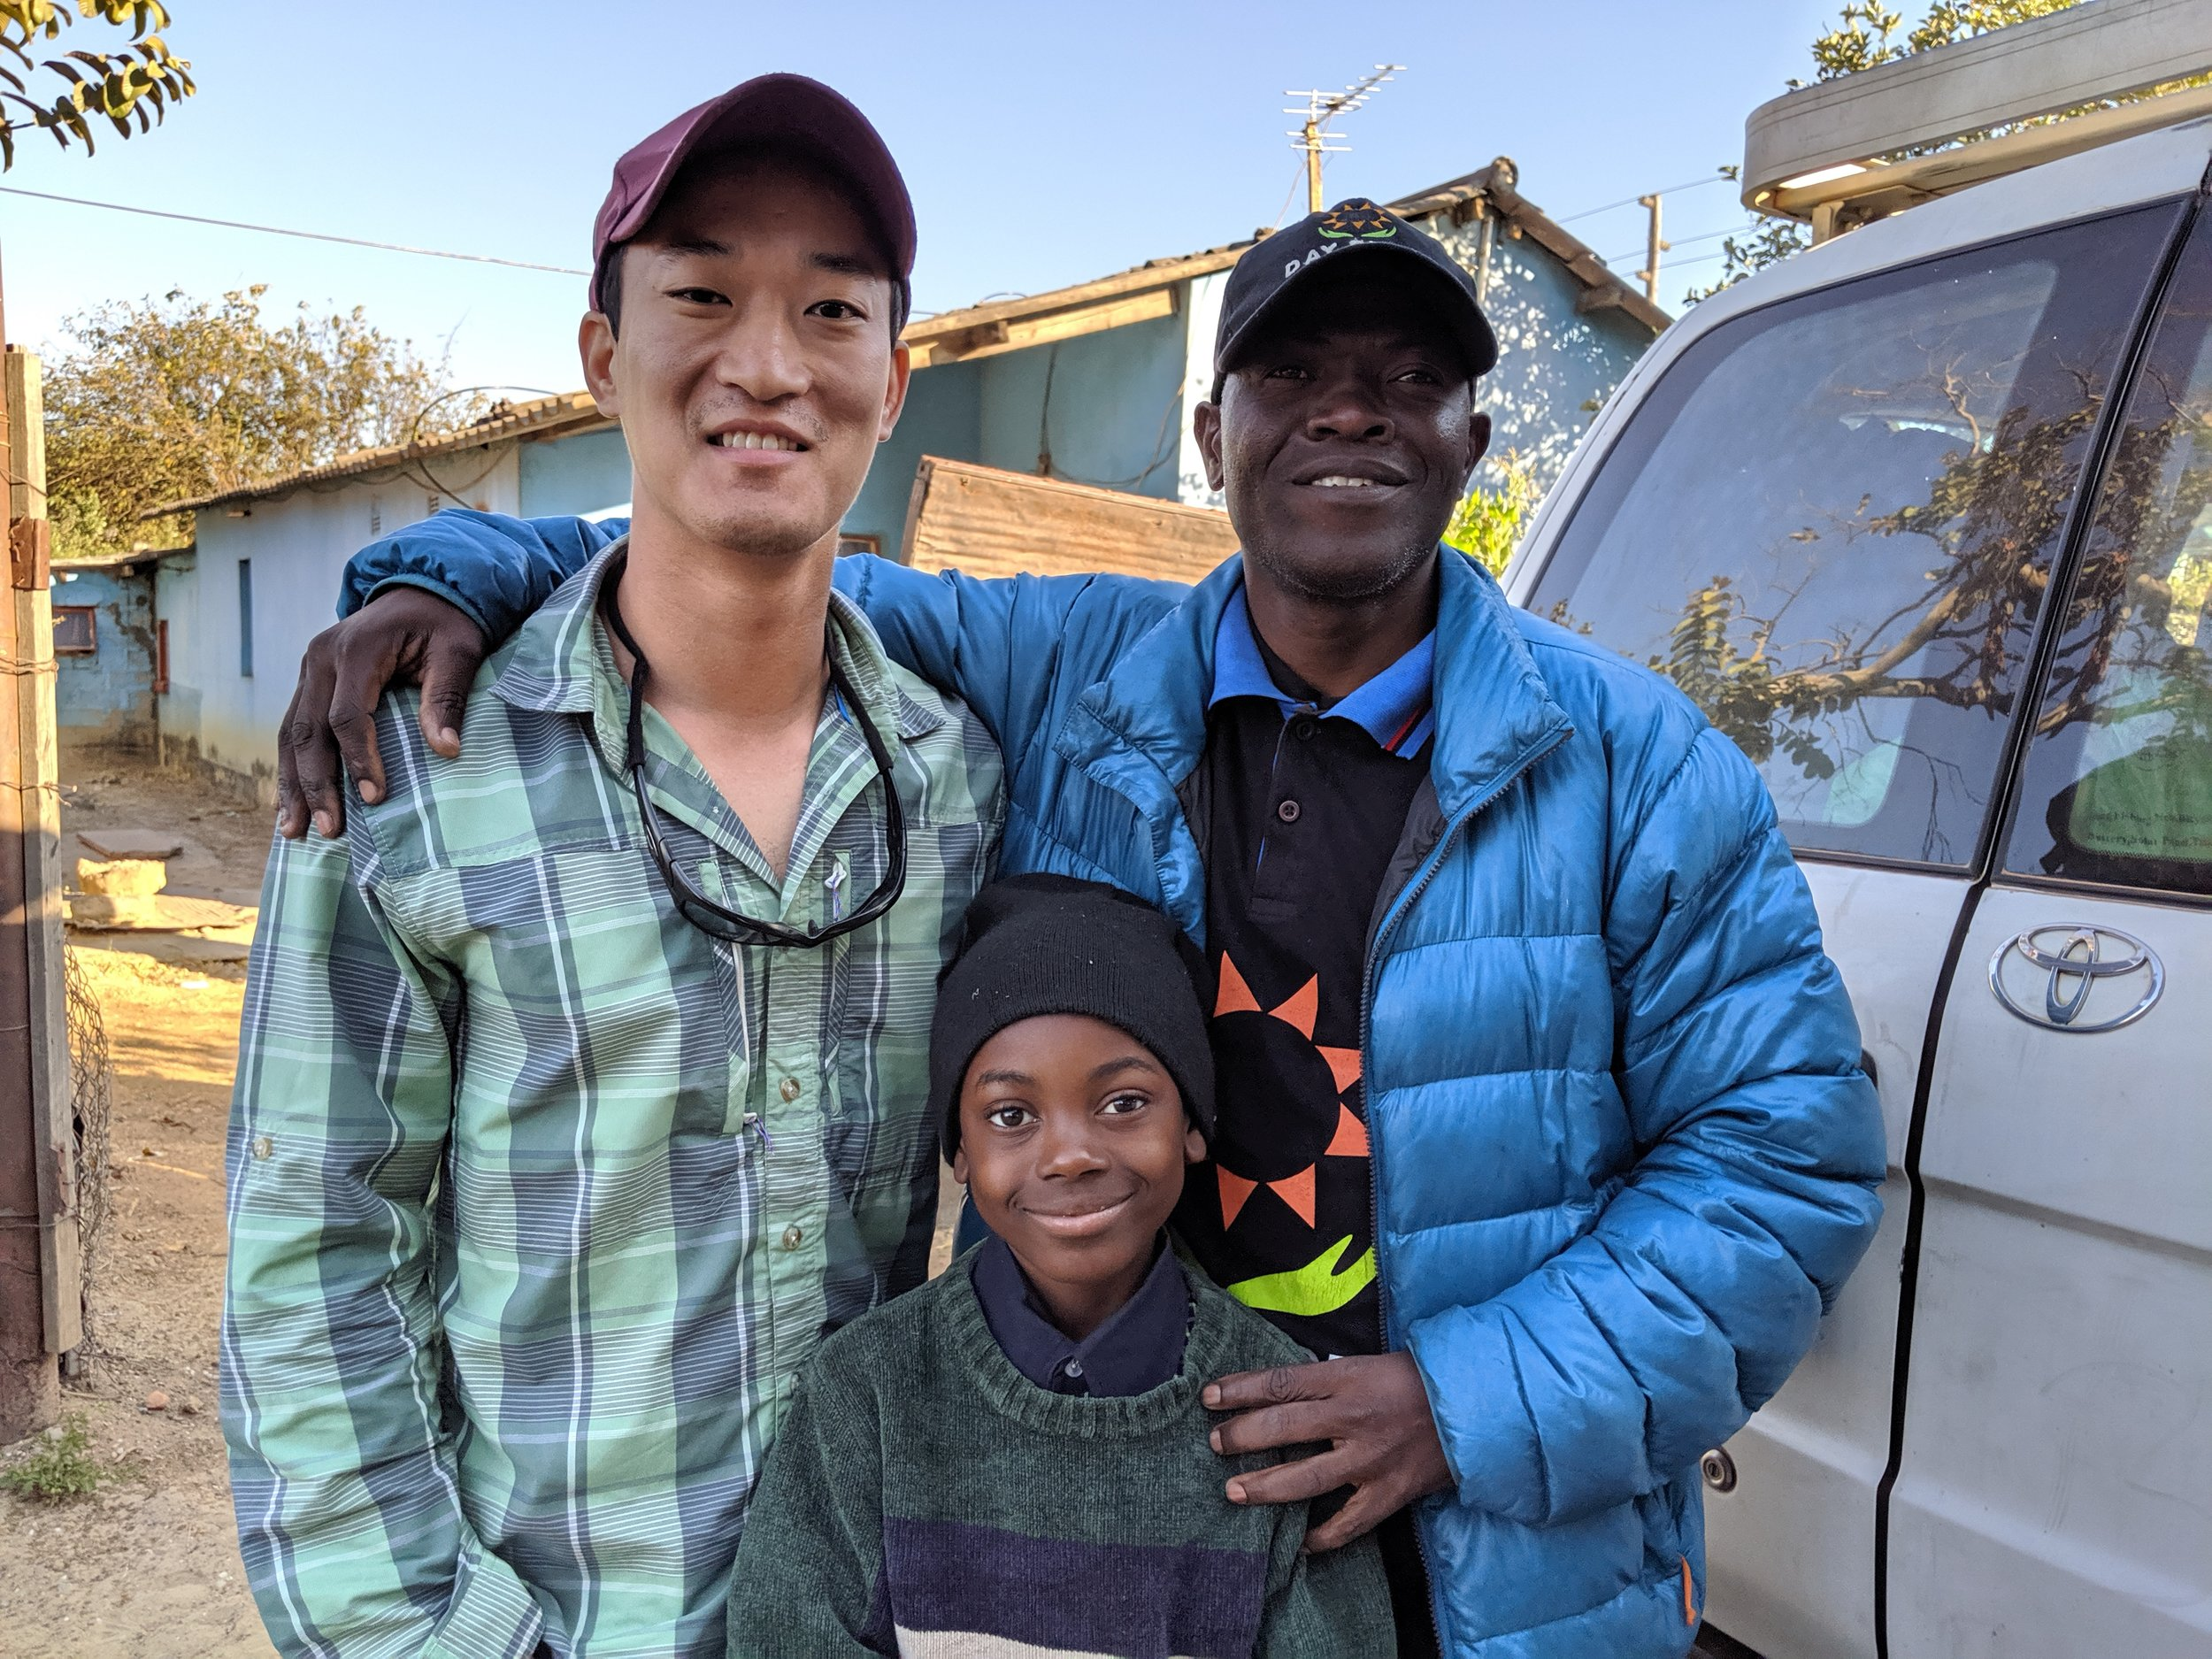 Me, Fred, and Fred's son outside of their home